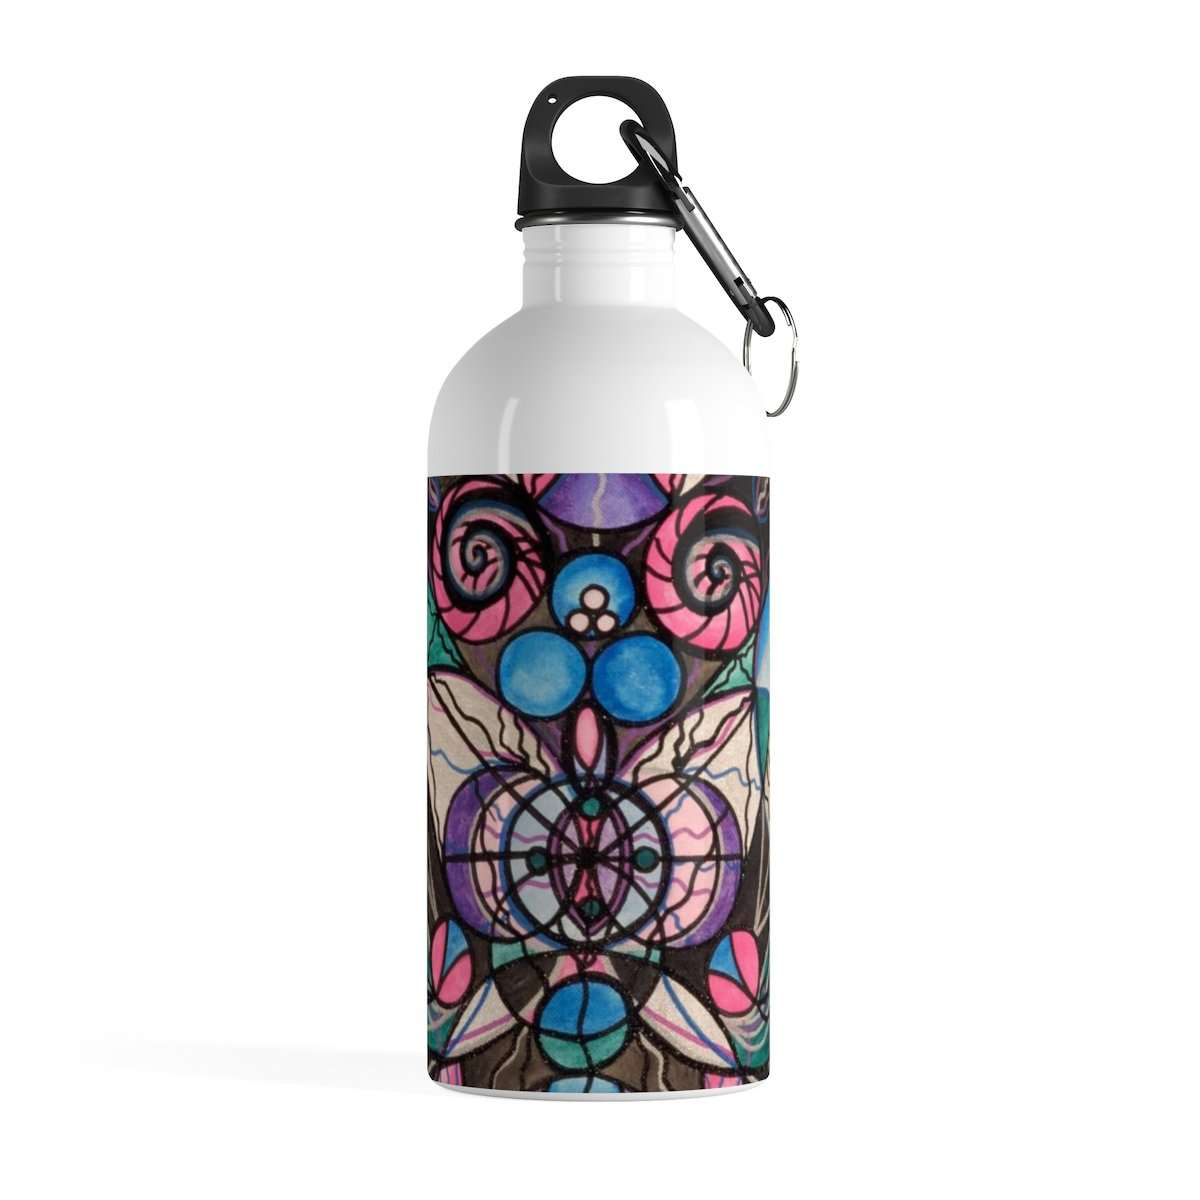 Arcturian Healing Lattice - Stainless Steel Water Bottle